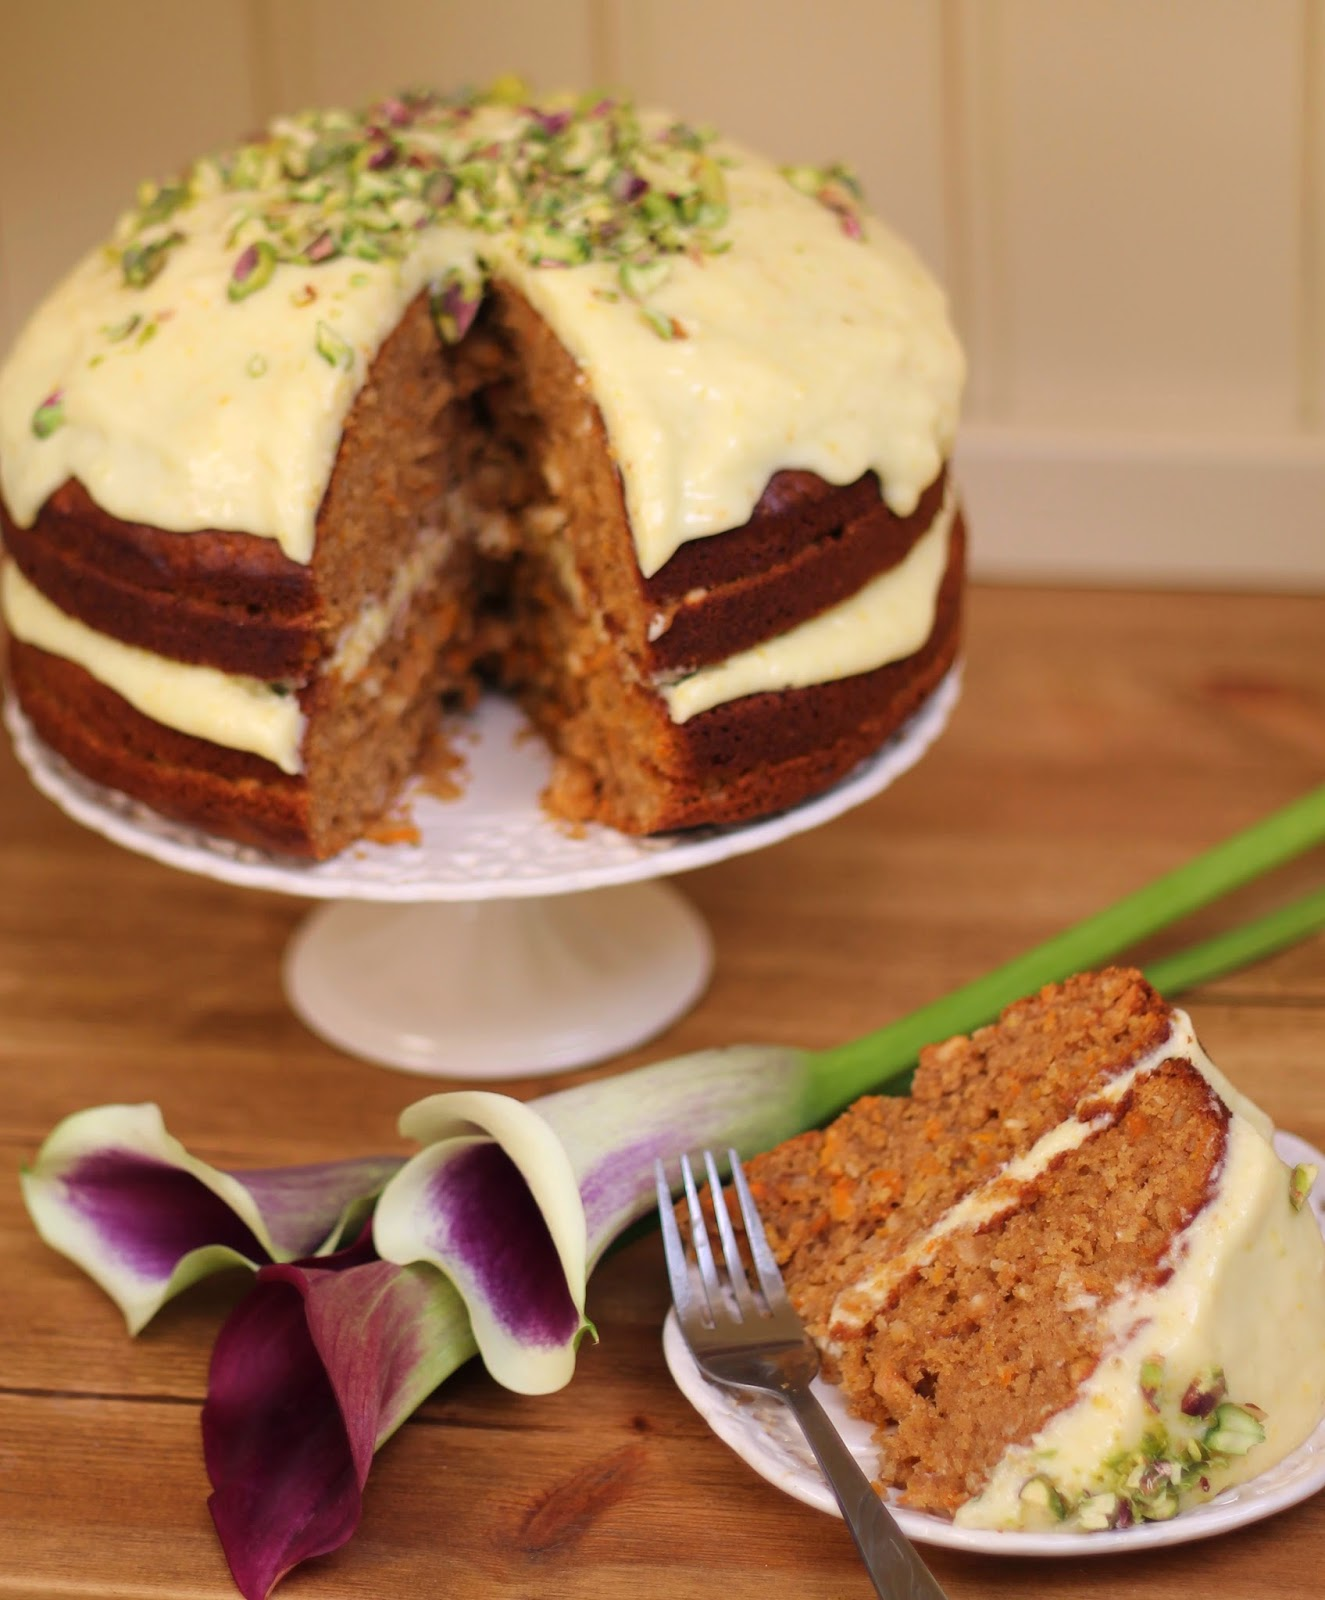 Dulce de leche carrot cake (with chocolate chunks)